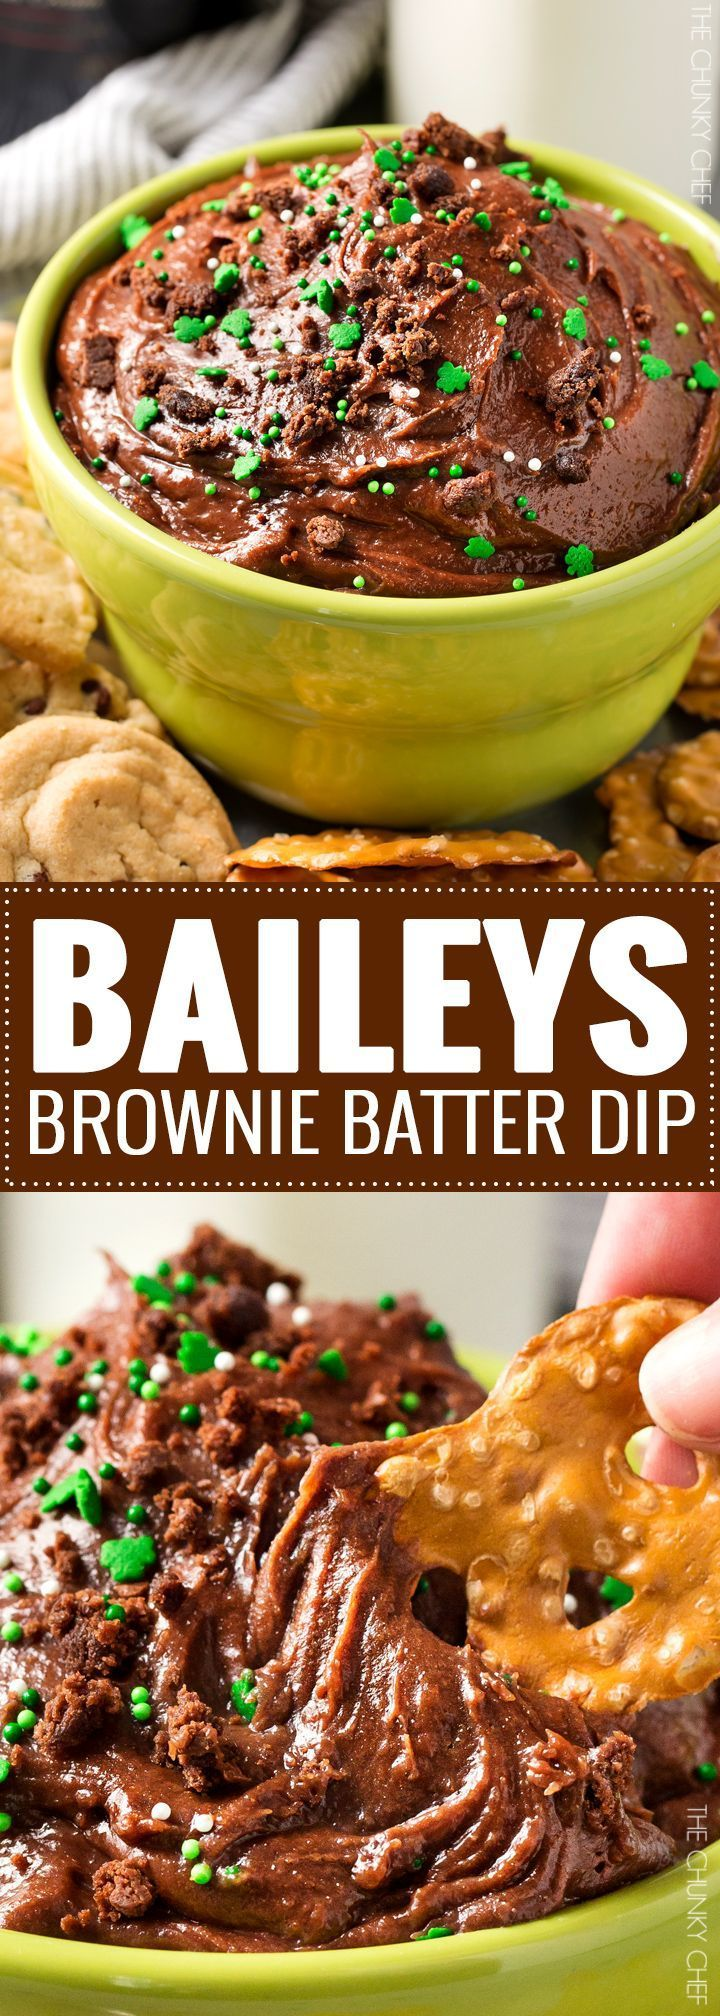 Baileys Brownie Batter Dip | All the amazing brownie batter flavor, in a safe to eat, eggless dip. A splash of Baileys gives this dessert dip a little holiday flair... perfect for a St. Patrick's Day party! | http://thechunkychef.com